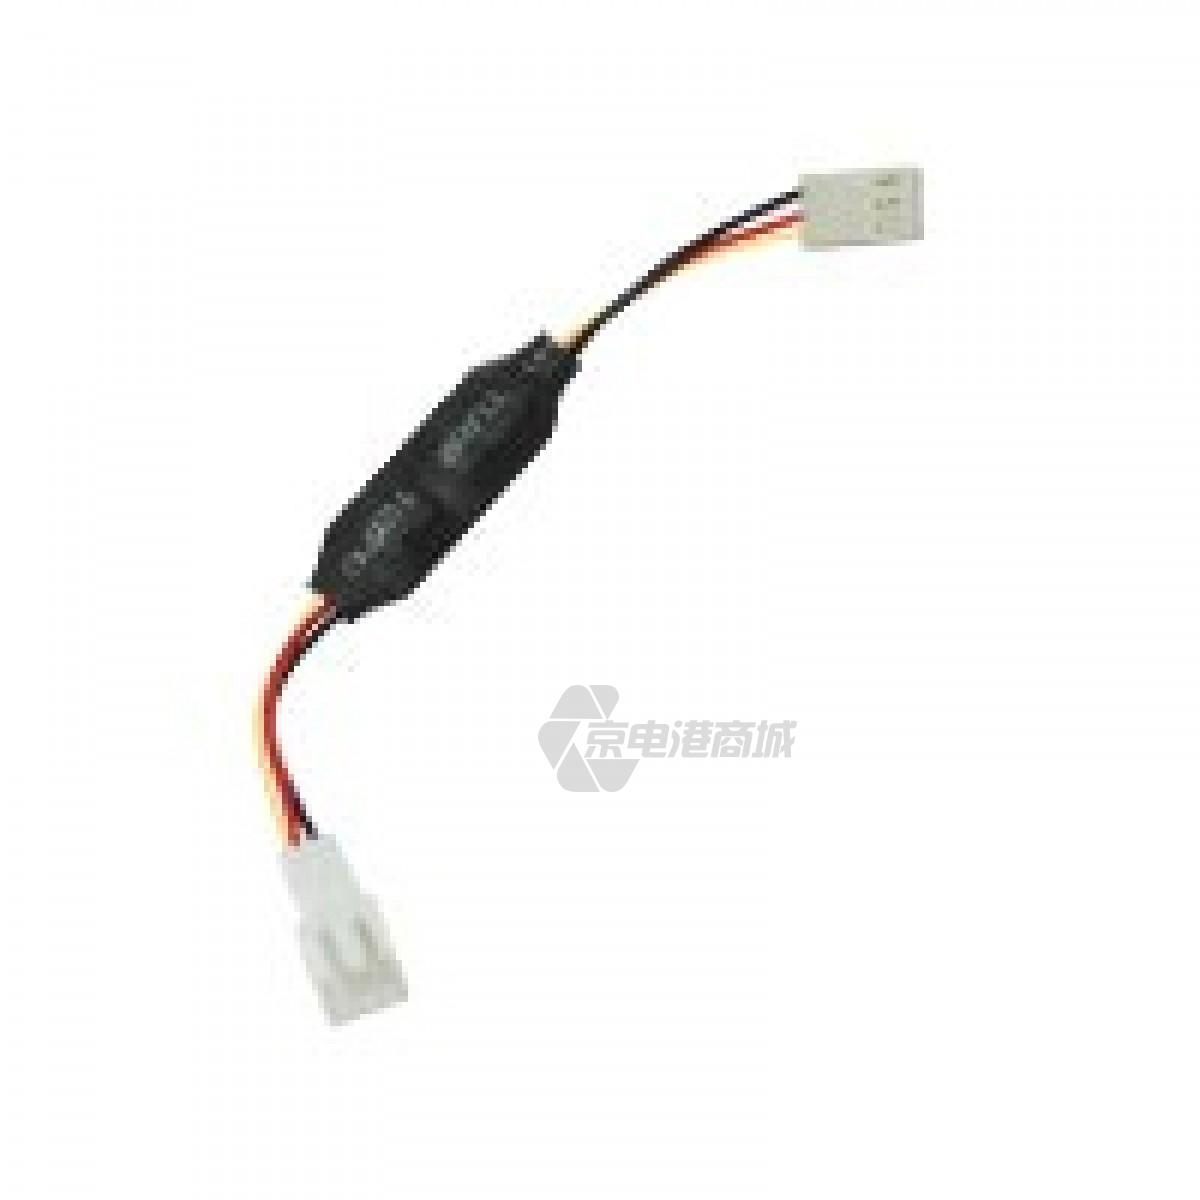 CABLES EC DF005 Fan speed reduction cable